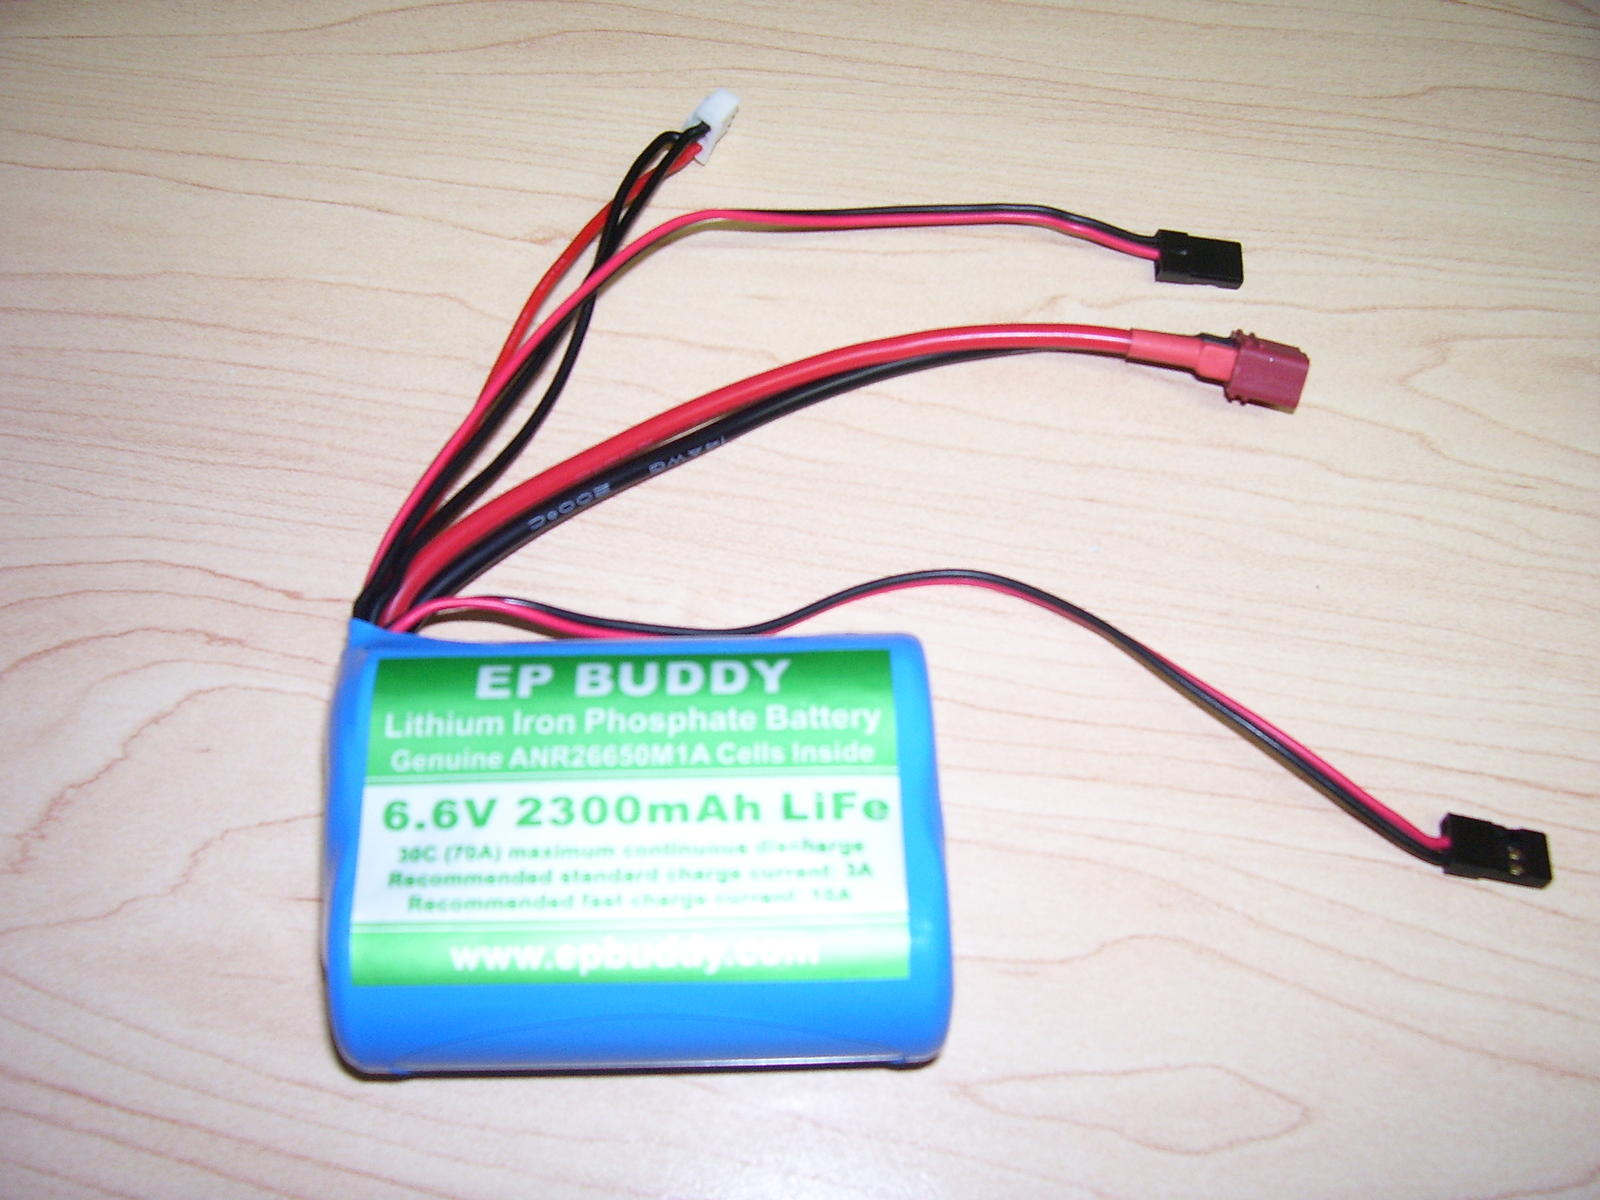 This is my test battery.  EP Buddy 6.6v 2300mAh LiFe